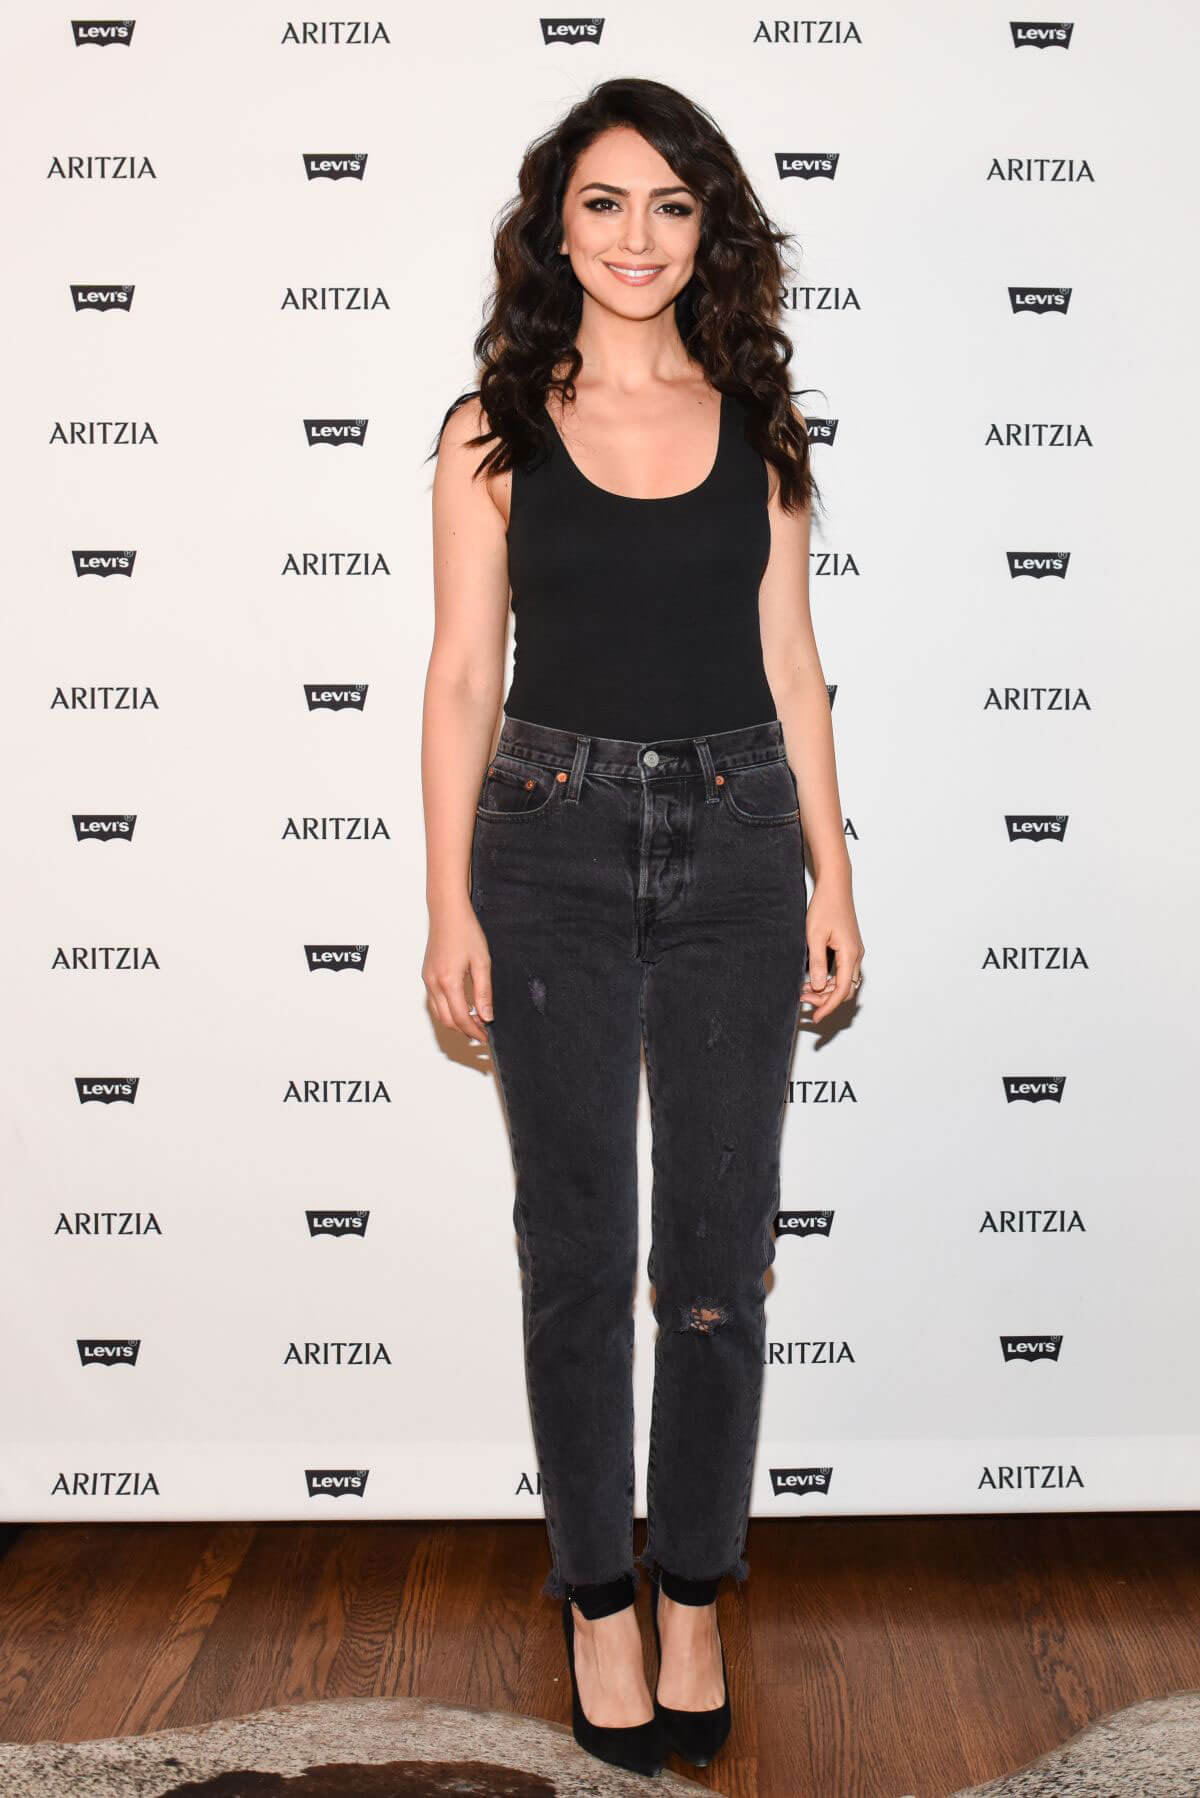 Nazanin Boniadi Stills at Levi's by Aritzia Collection Launch in Los Angeles 2017/11/16